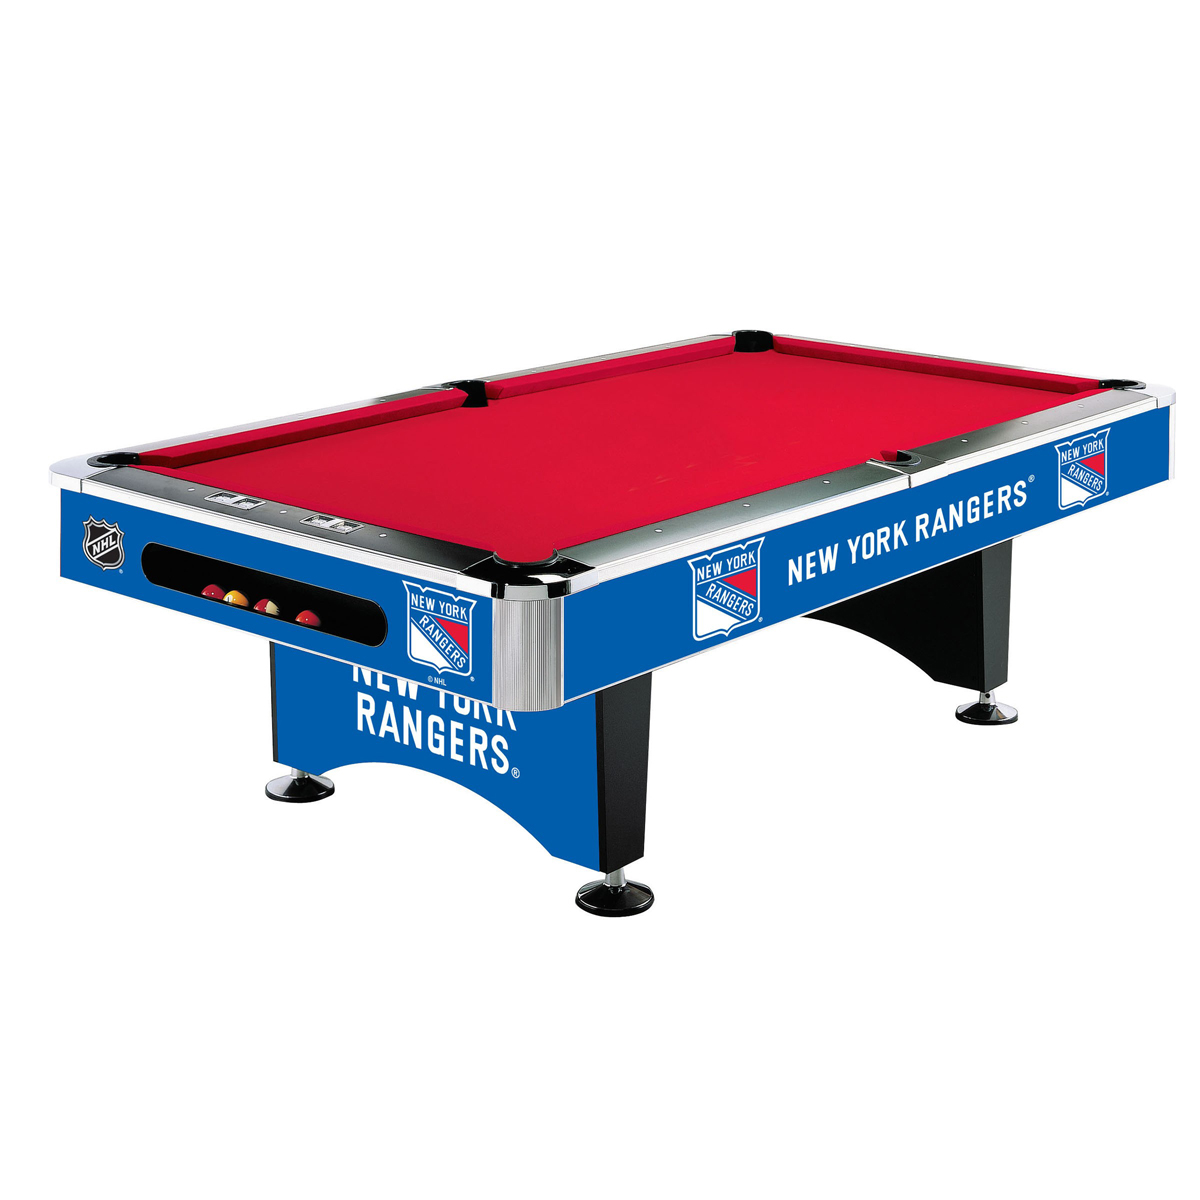 NEW YORK RANGERS® 8-FT. POOL TABLE